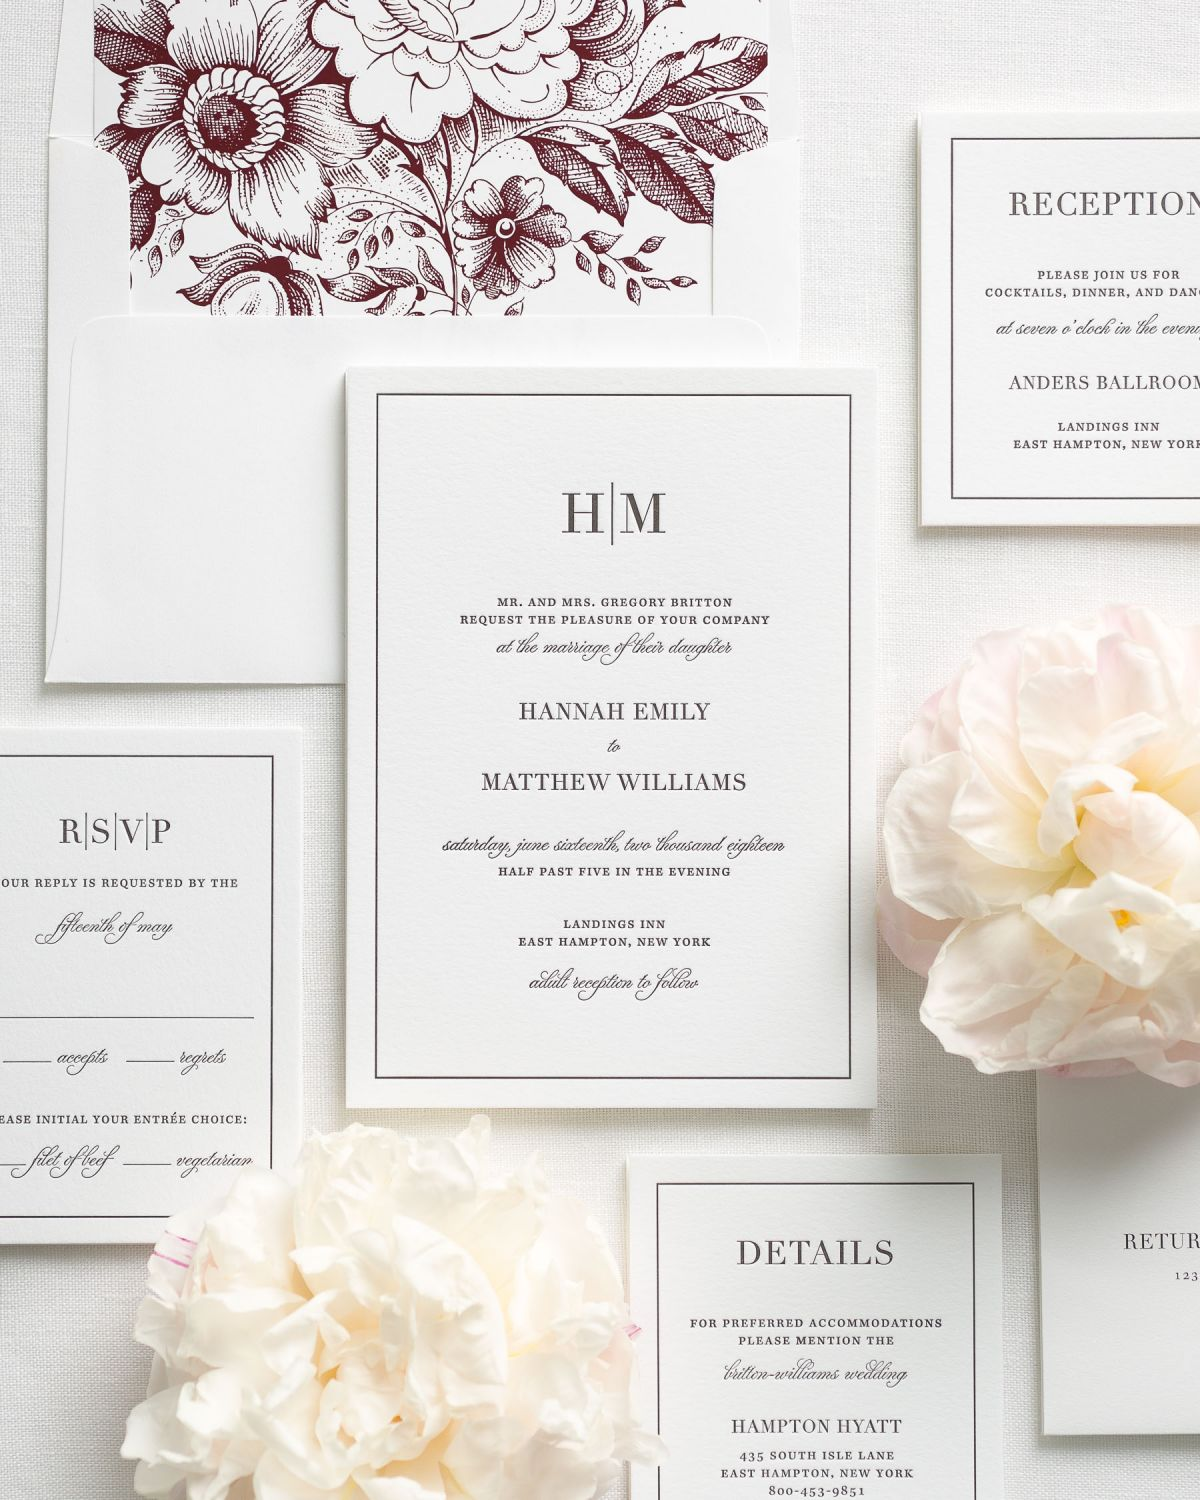 Modern Monogram Wedding Invitations with a wine floral liner